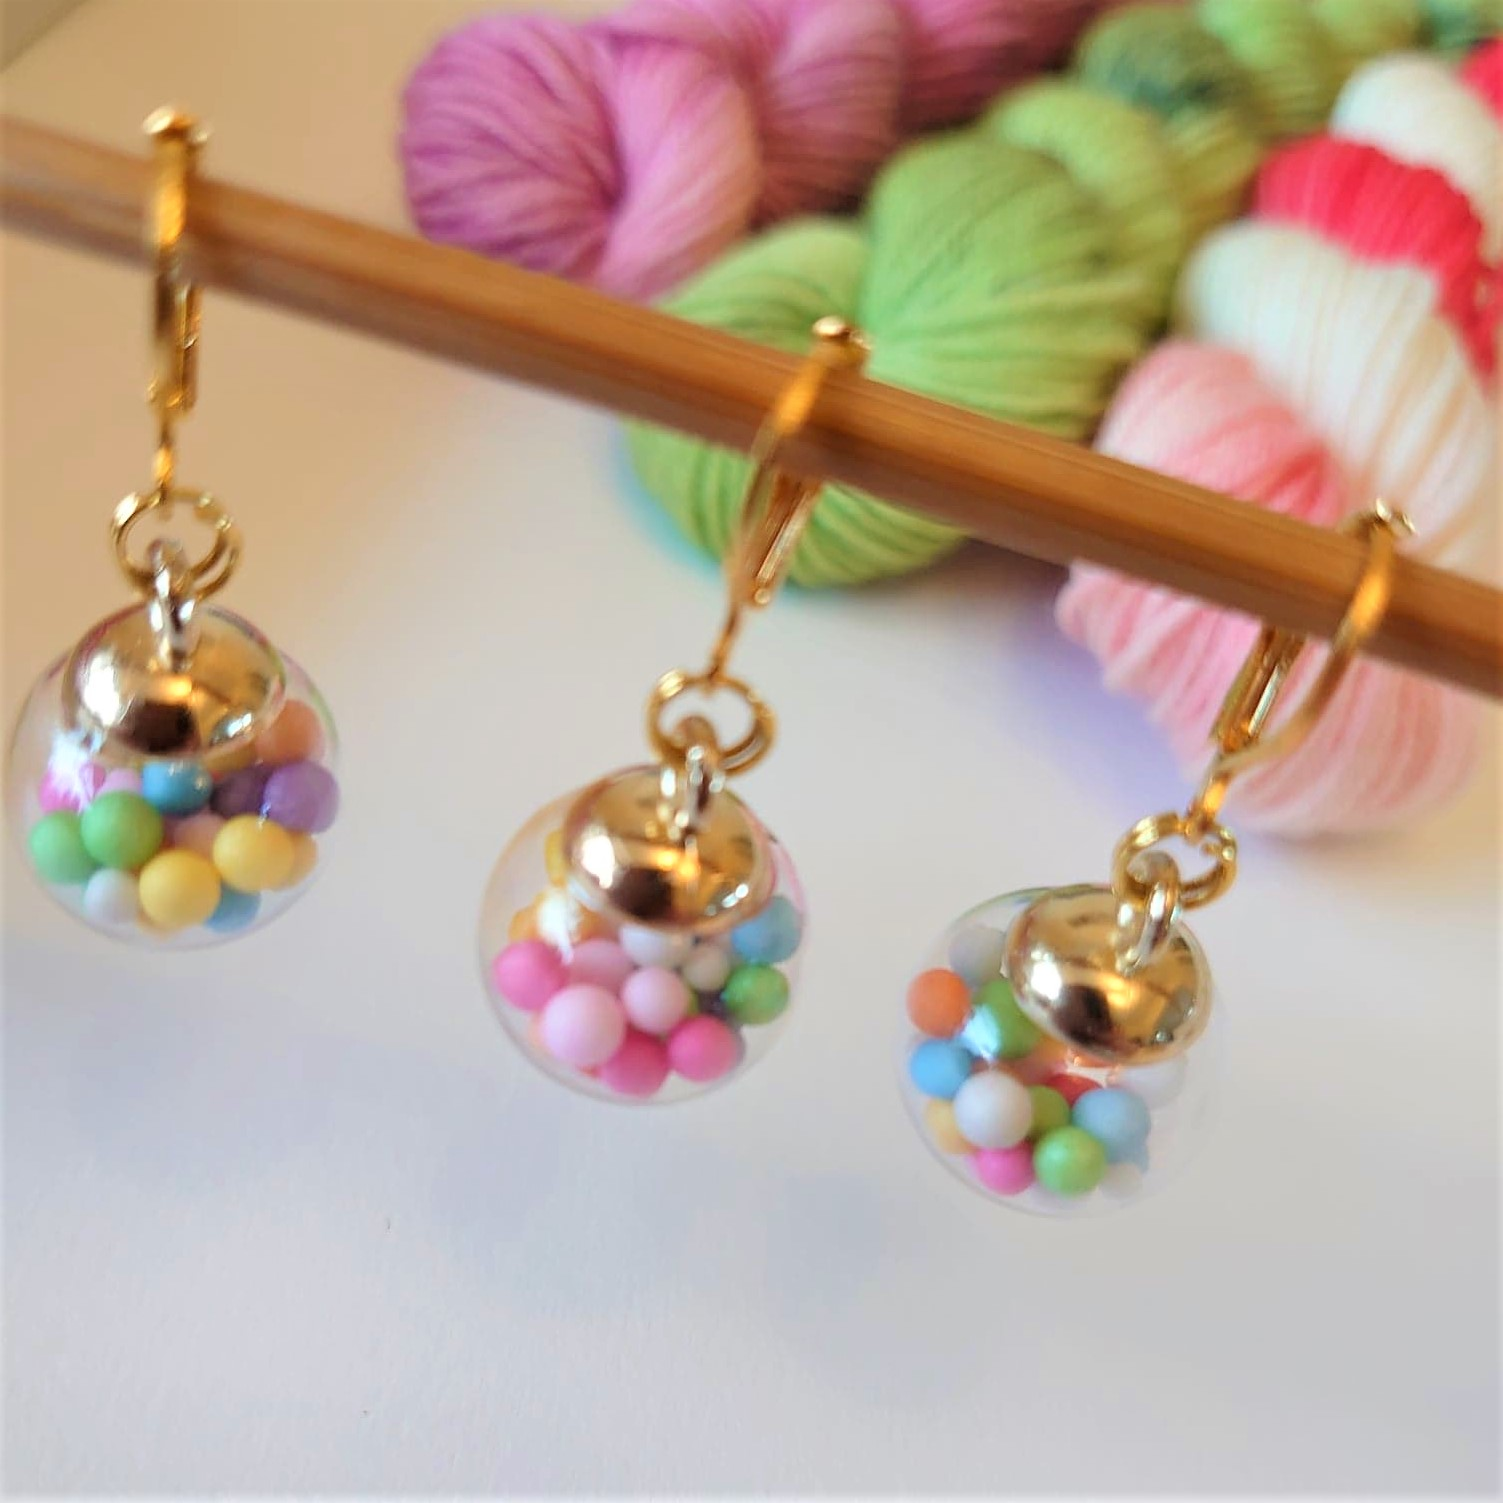 Bright Bauble Stitch Markers